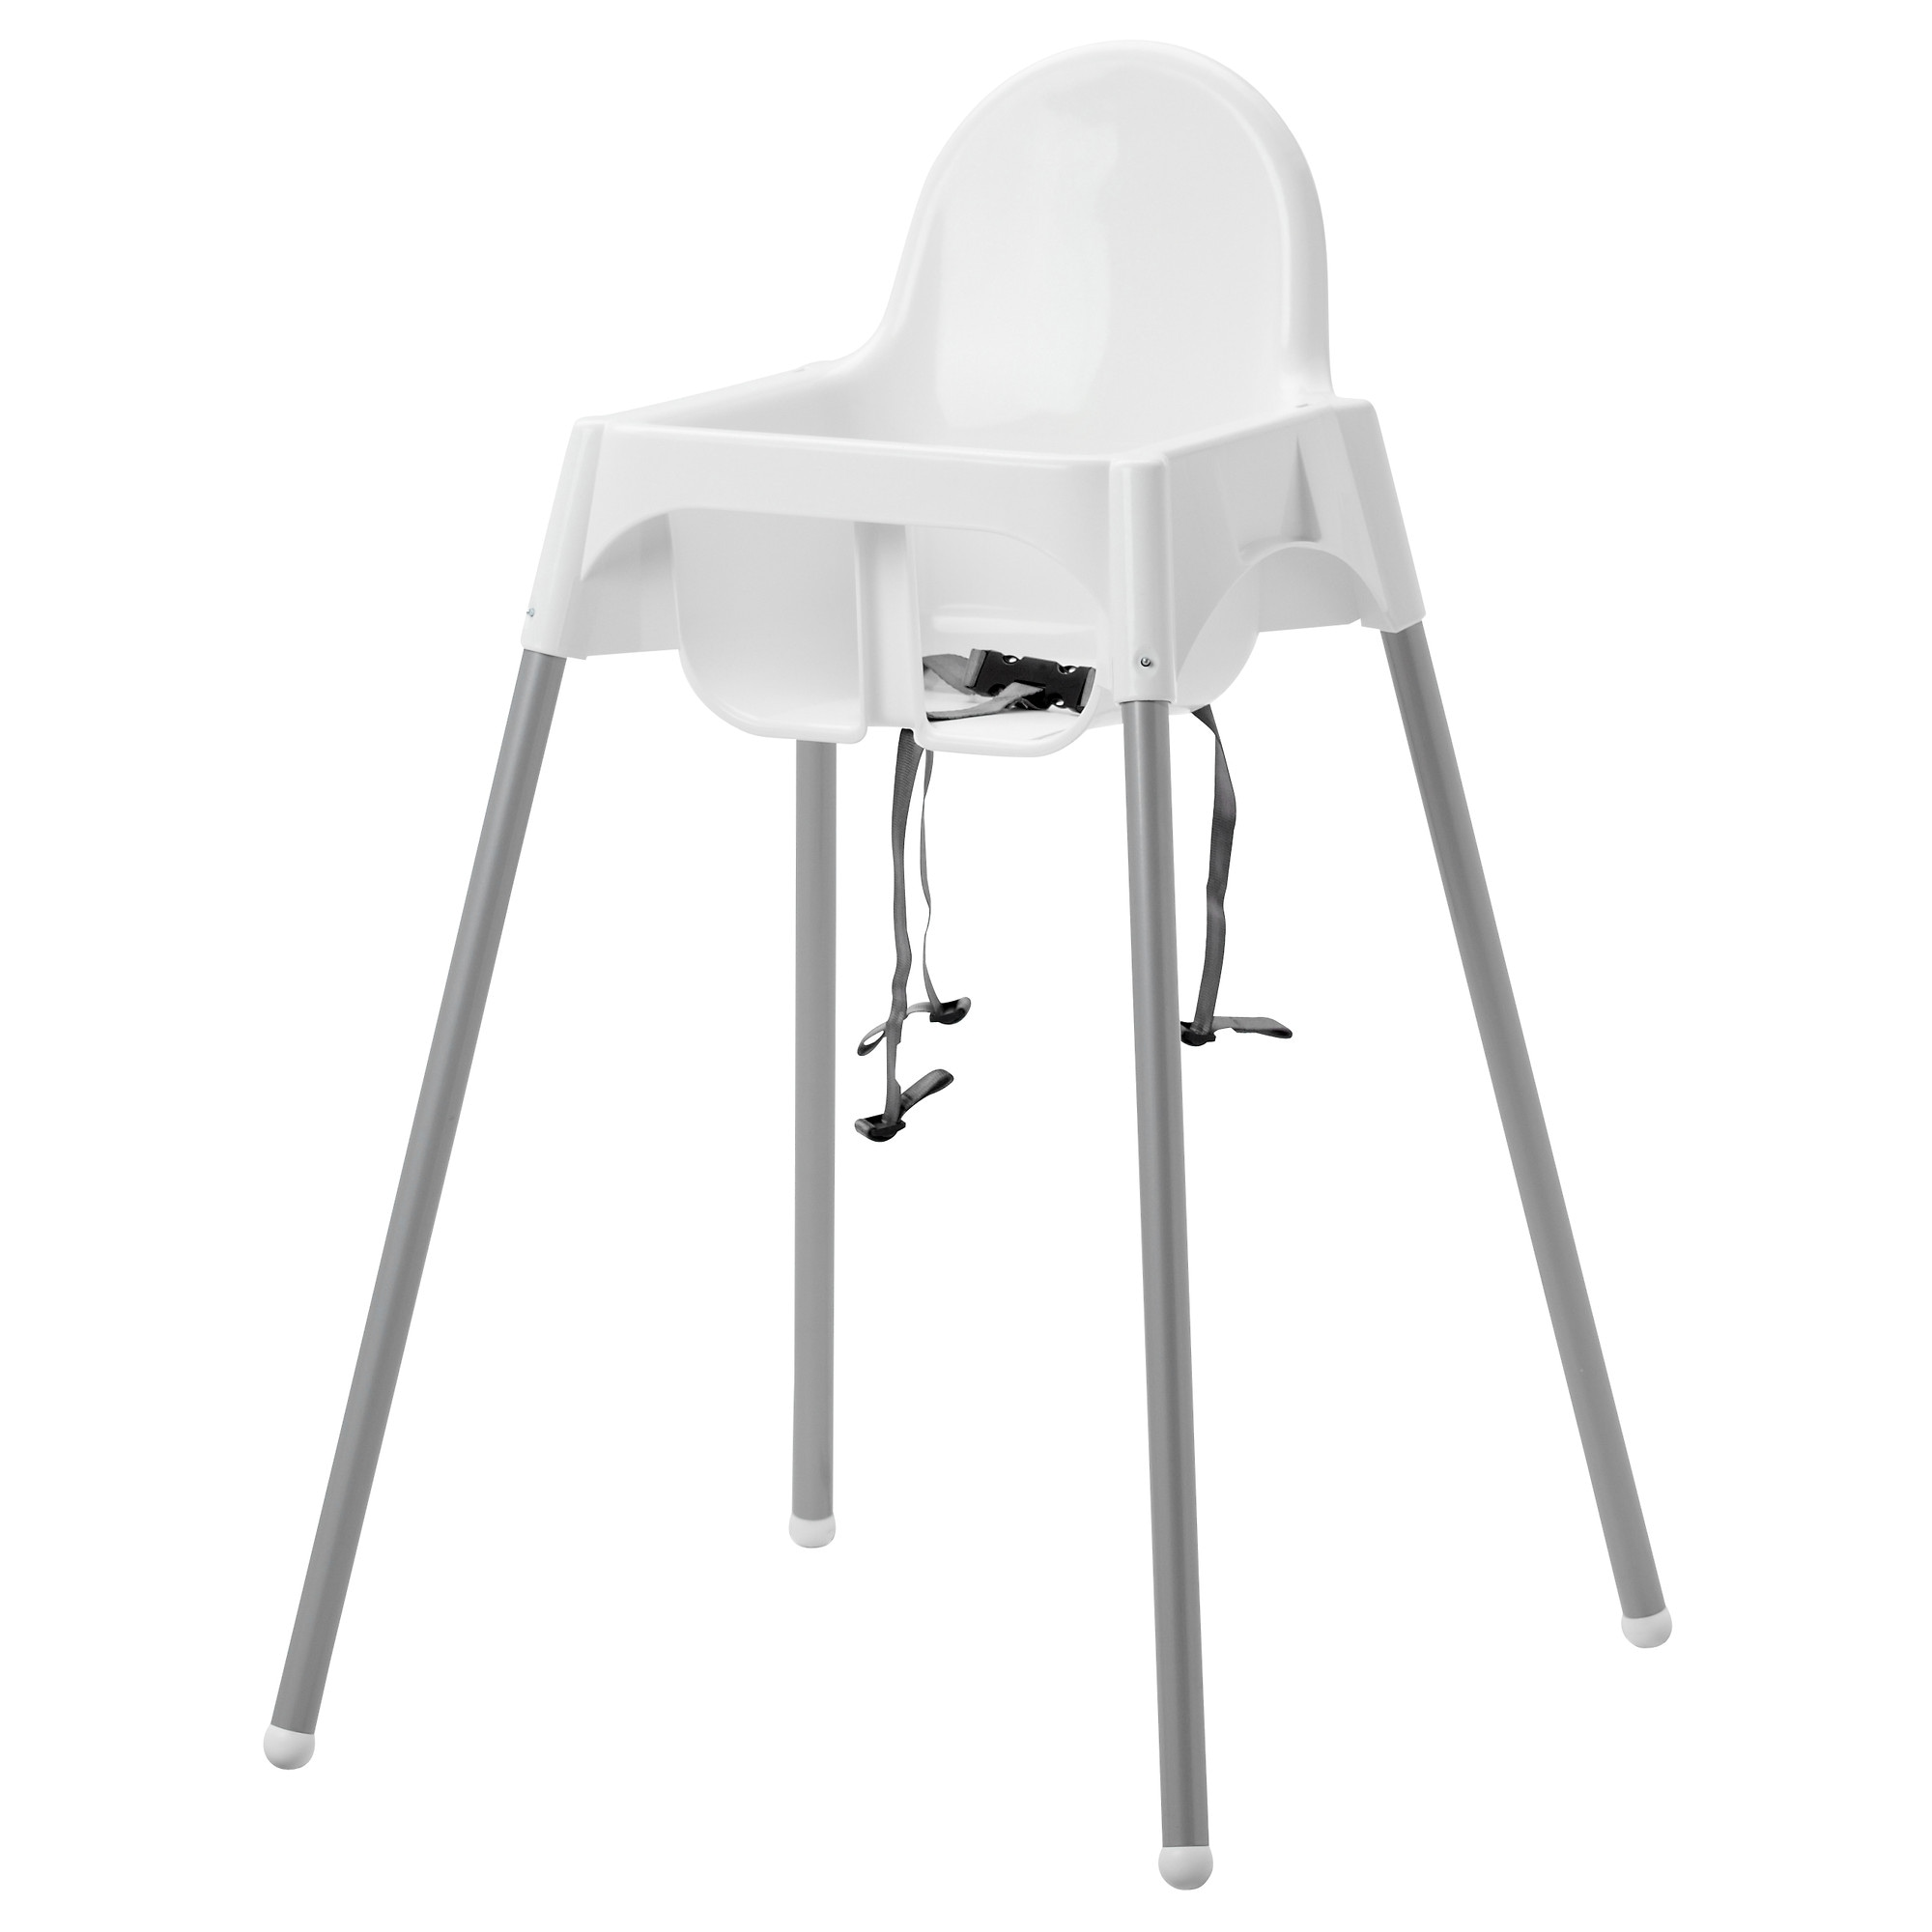 90d4dda3e94 ANTILOP High chair with safety belt - IKEA